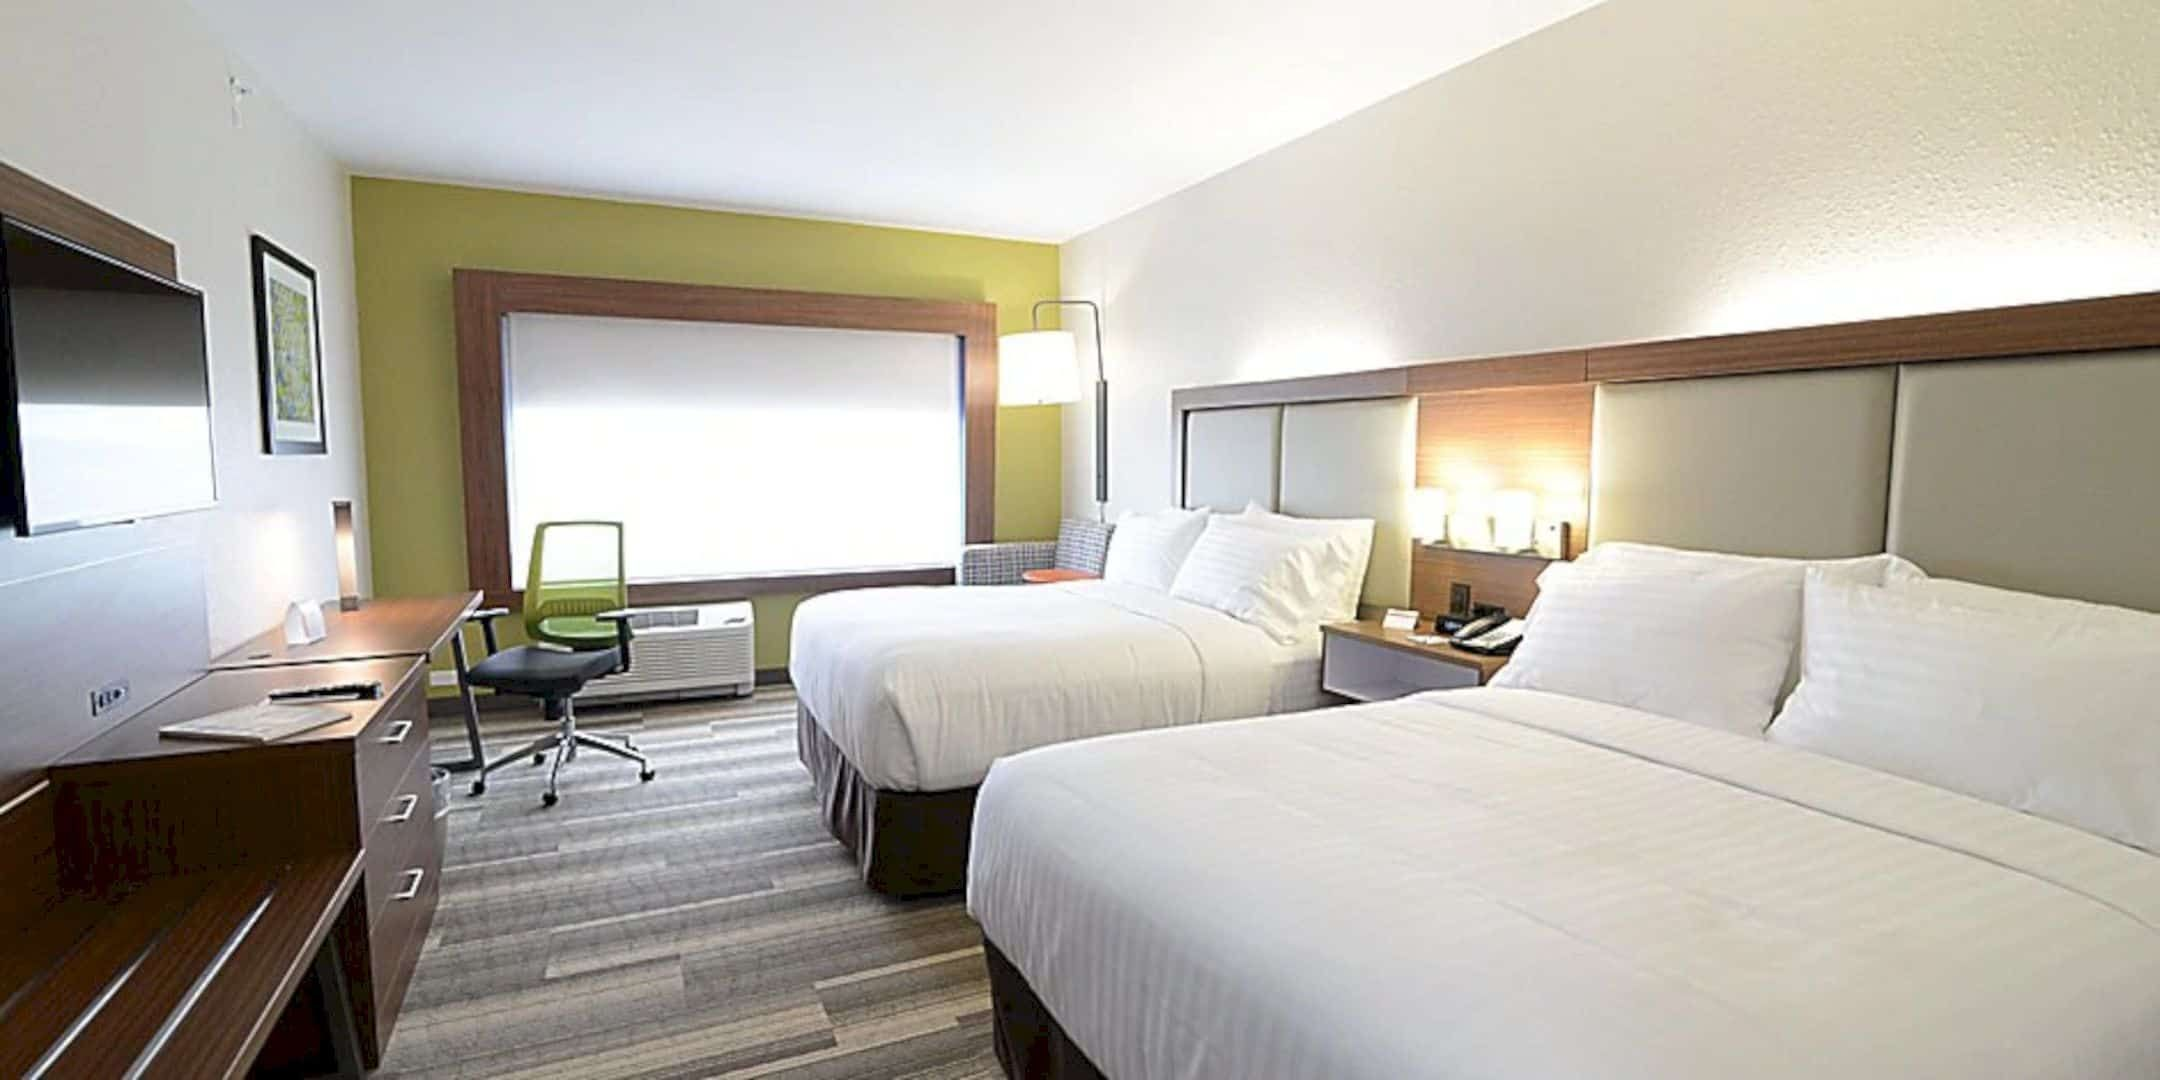 Holiday Inn Express Suites Chicago North Shore Niles A New Hotel With Contemporary Rooms In Chicago Contemporary Room Lounge Design Lounge Areas